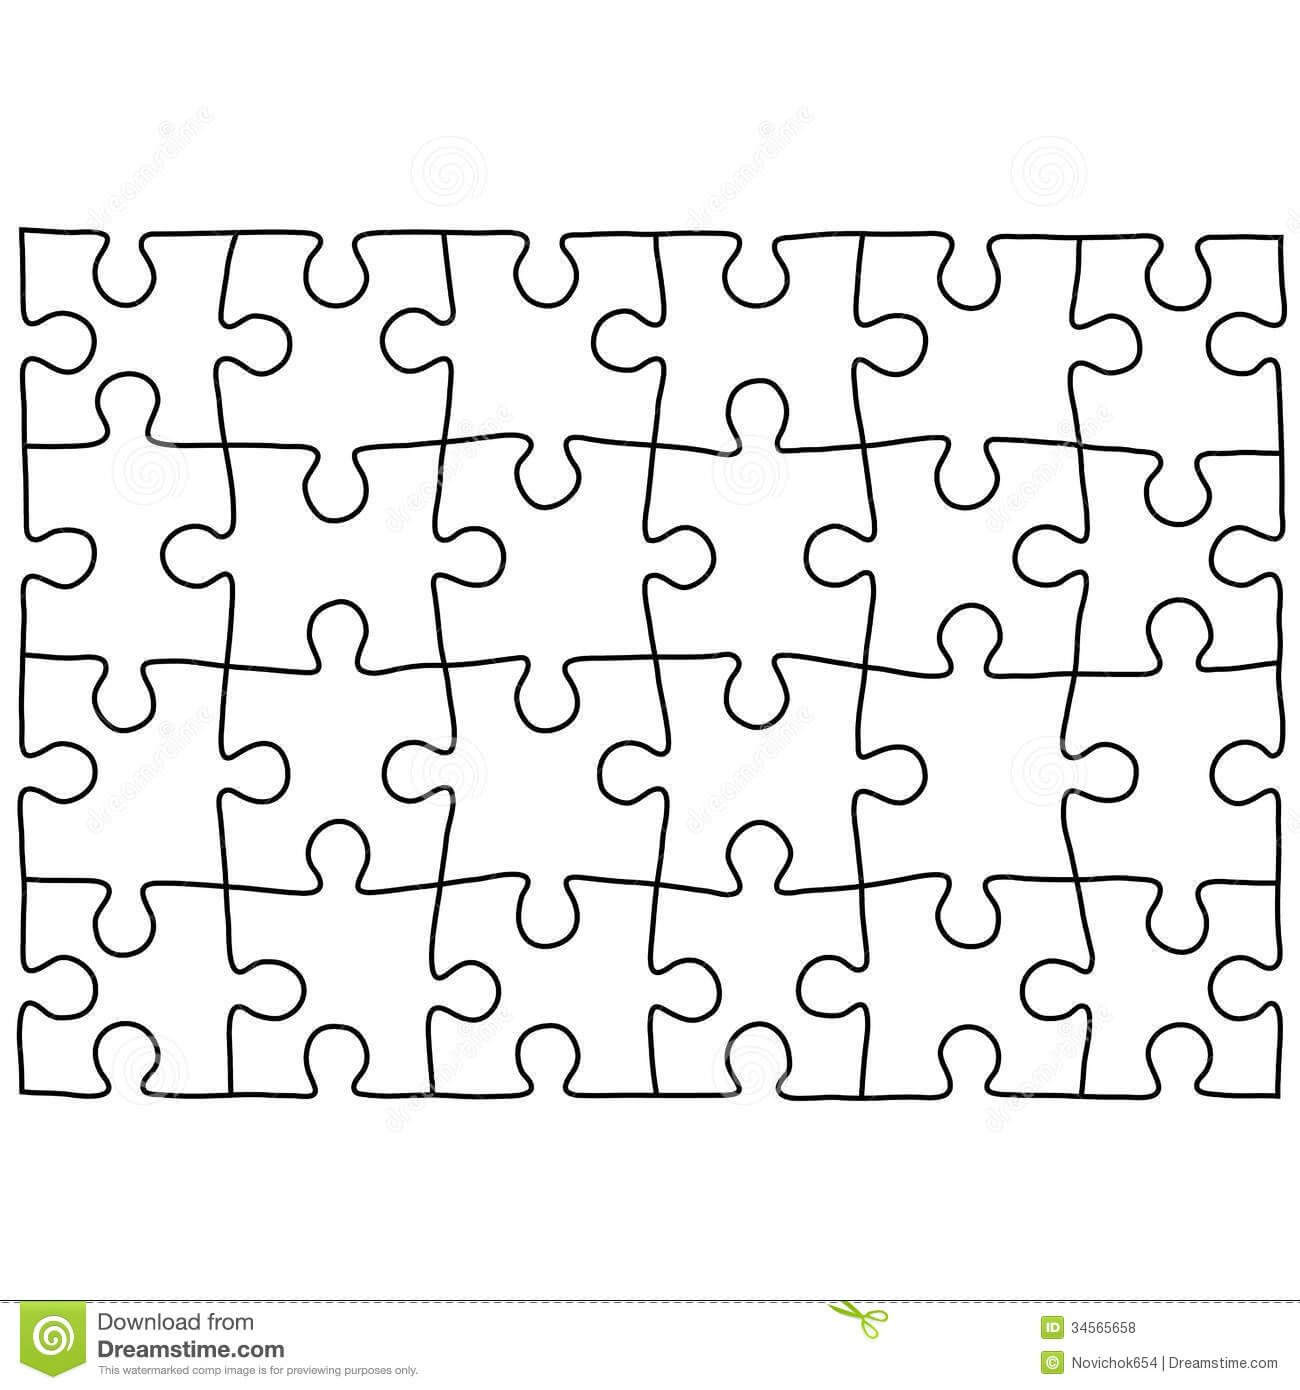 Jigsaw Puzzle Design Template | Free Puzzle Templates In regarding Jigsaw Puzzle Template For Word